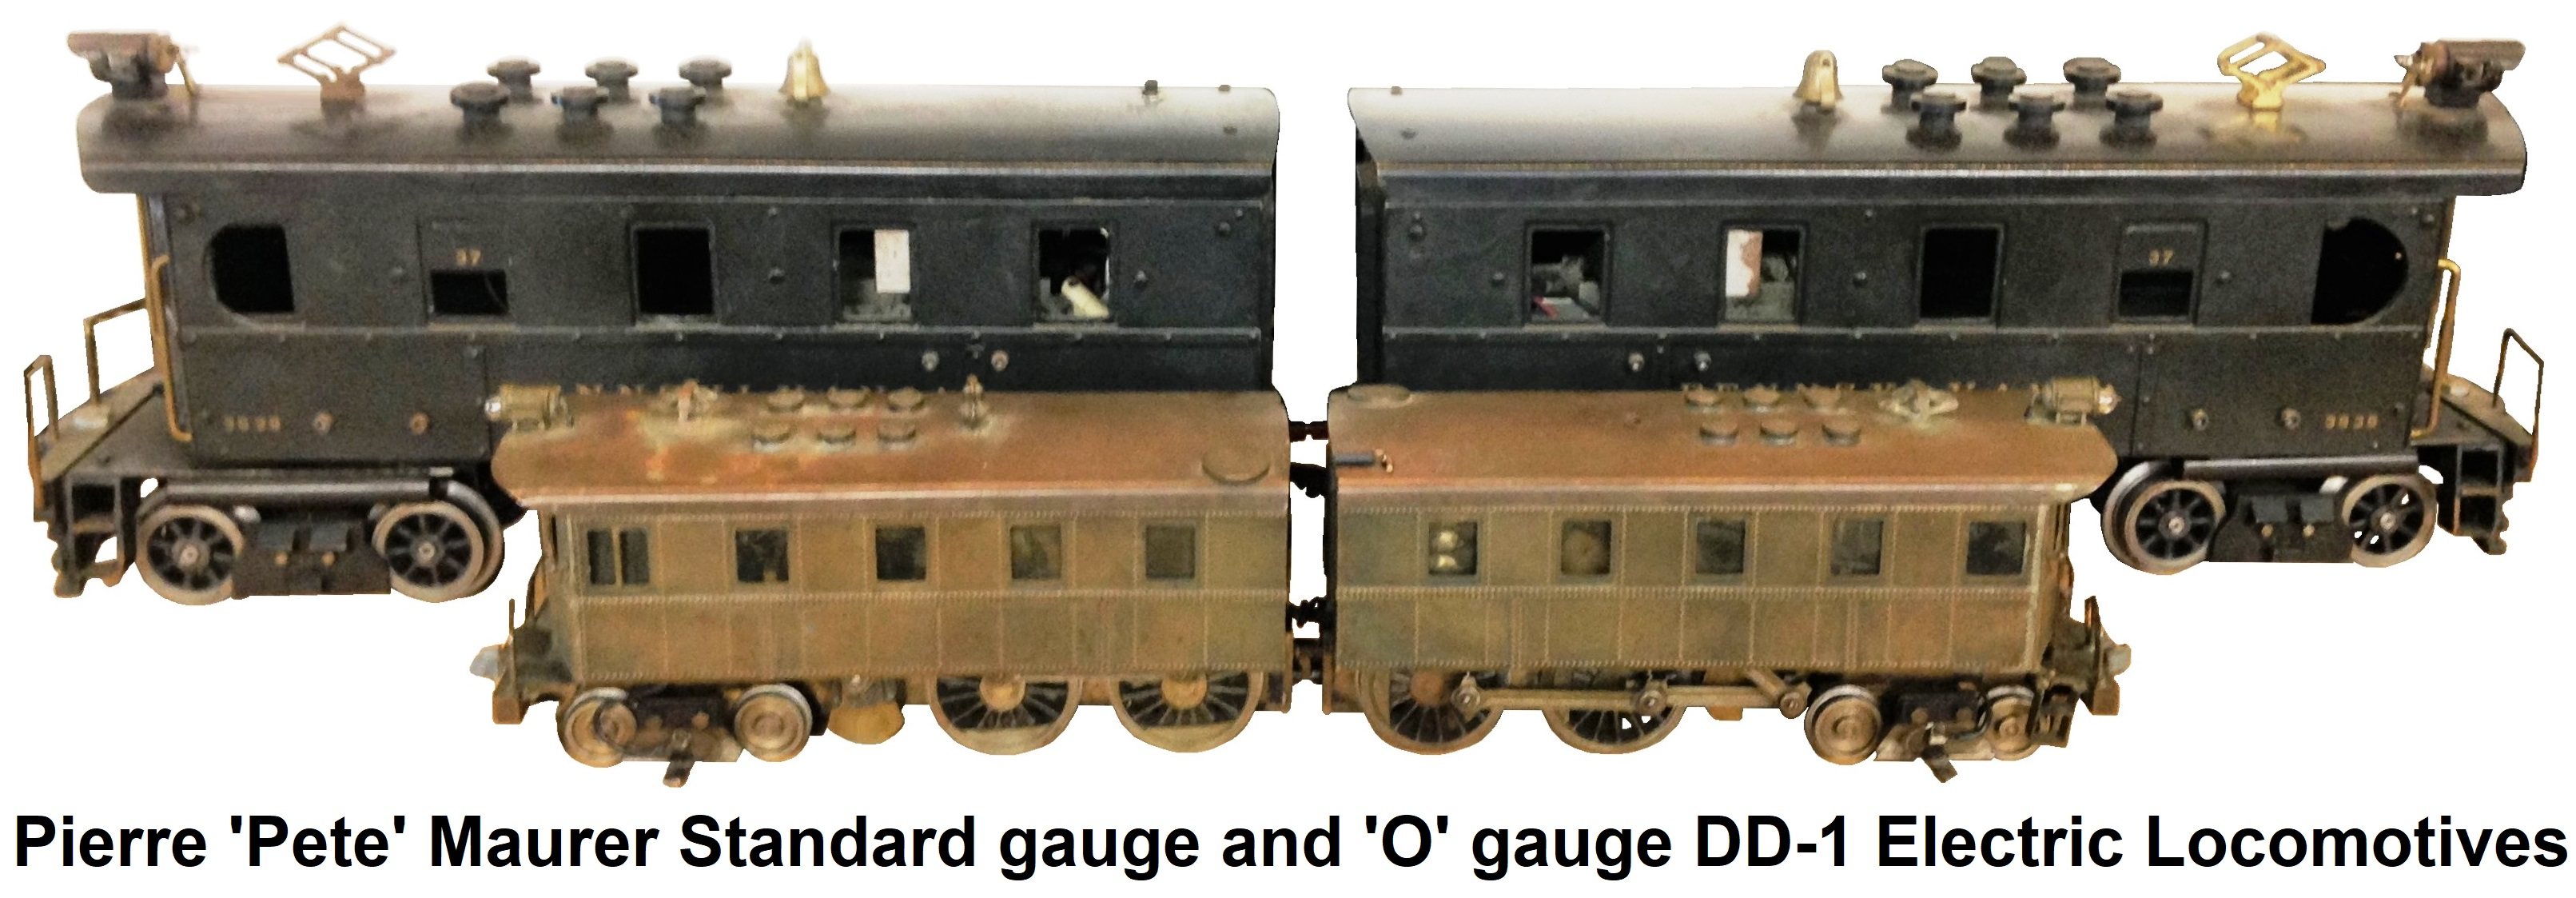 Pierre 'Pete' Maurer Trains Standard gauge and 'O' gauge DD-1 Electric Locomotives